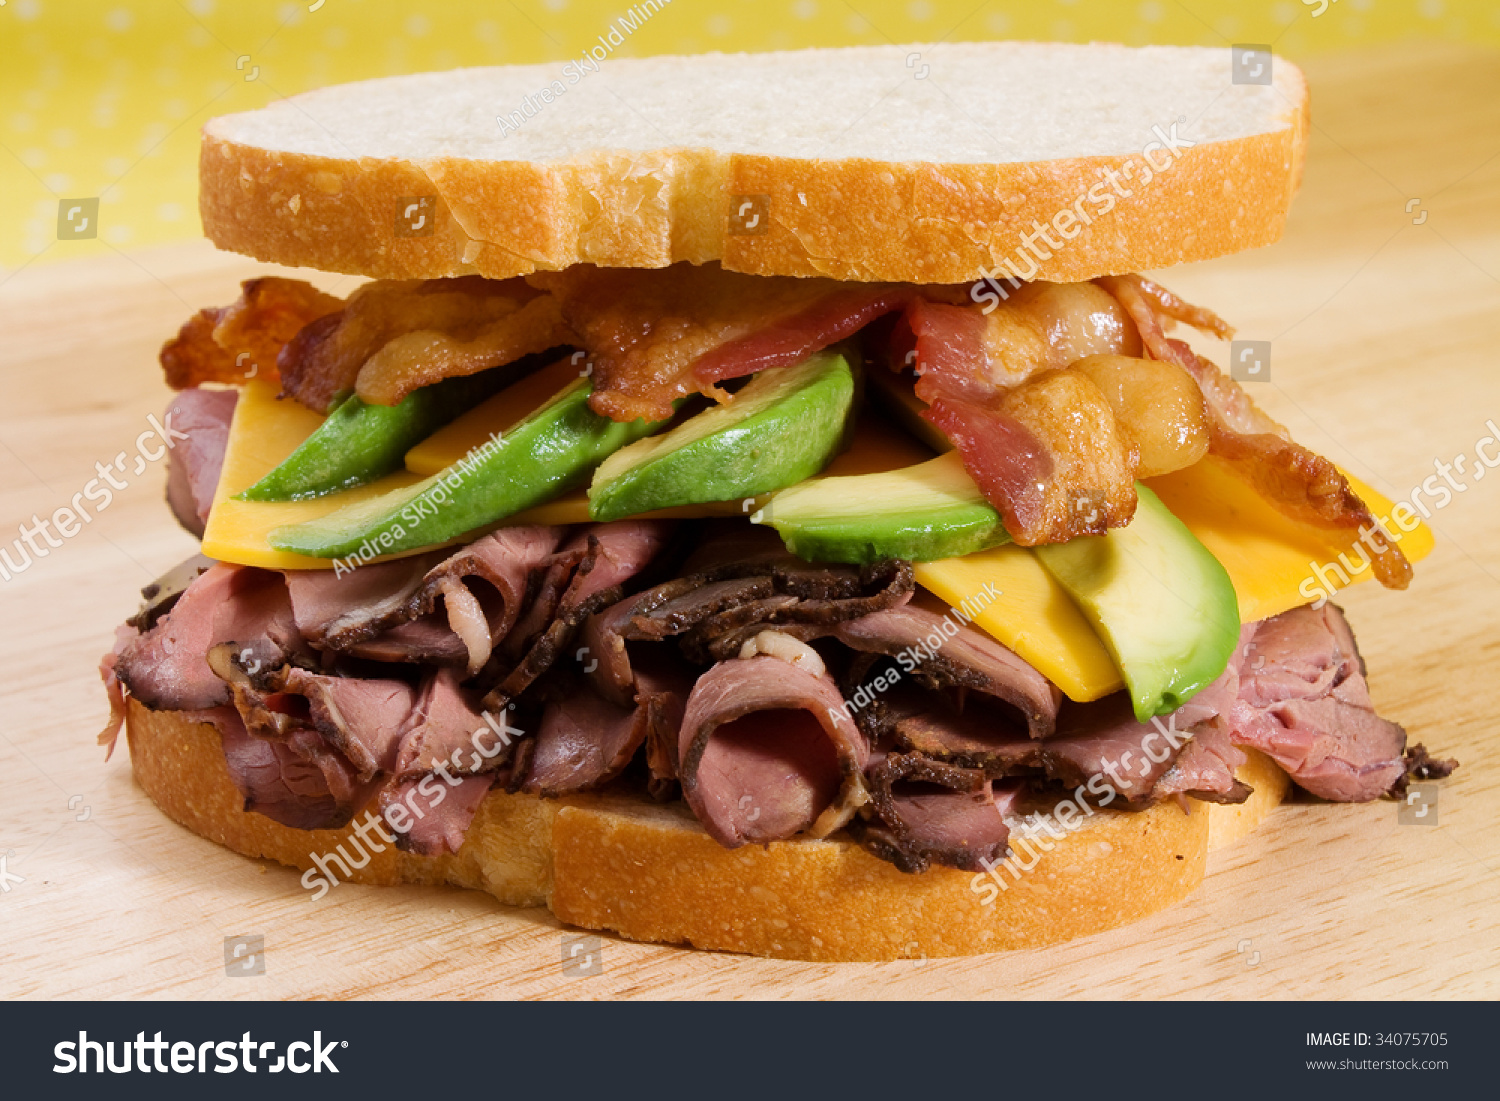 Sliced roast beef package - Roast Beef Sandwich With Cheddar Cheese Sliced Avocado And Bacon Strips